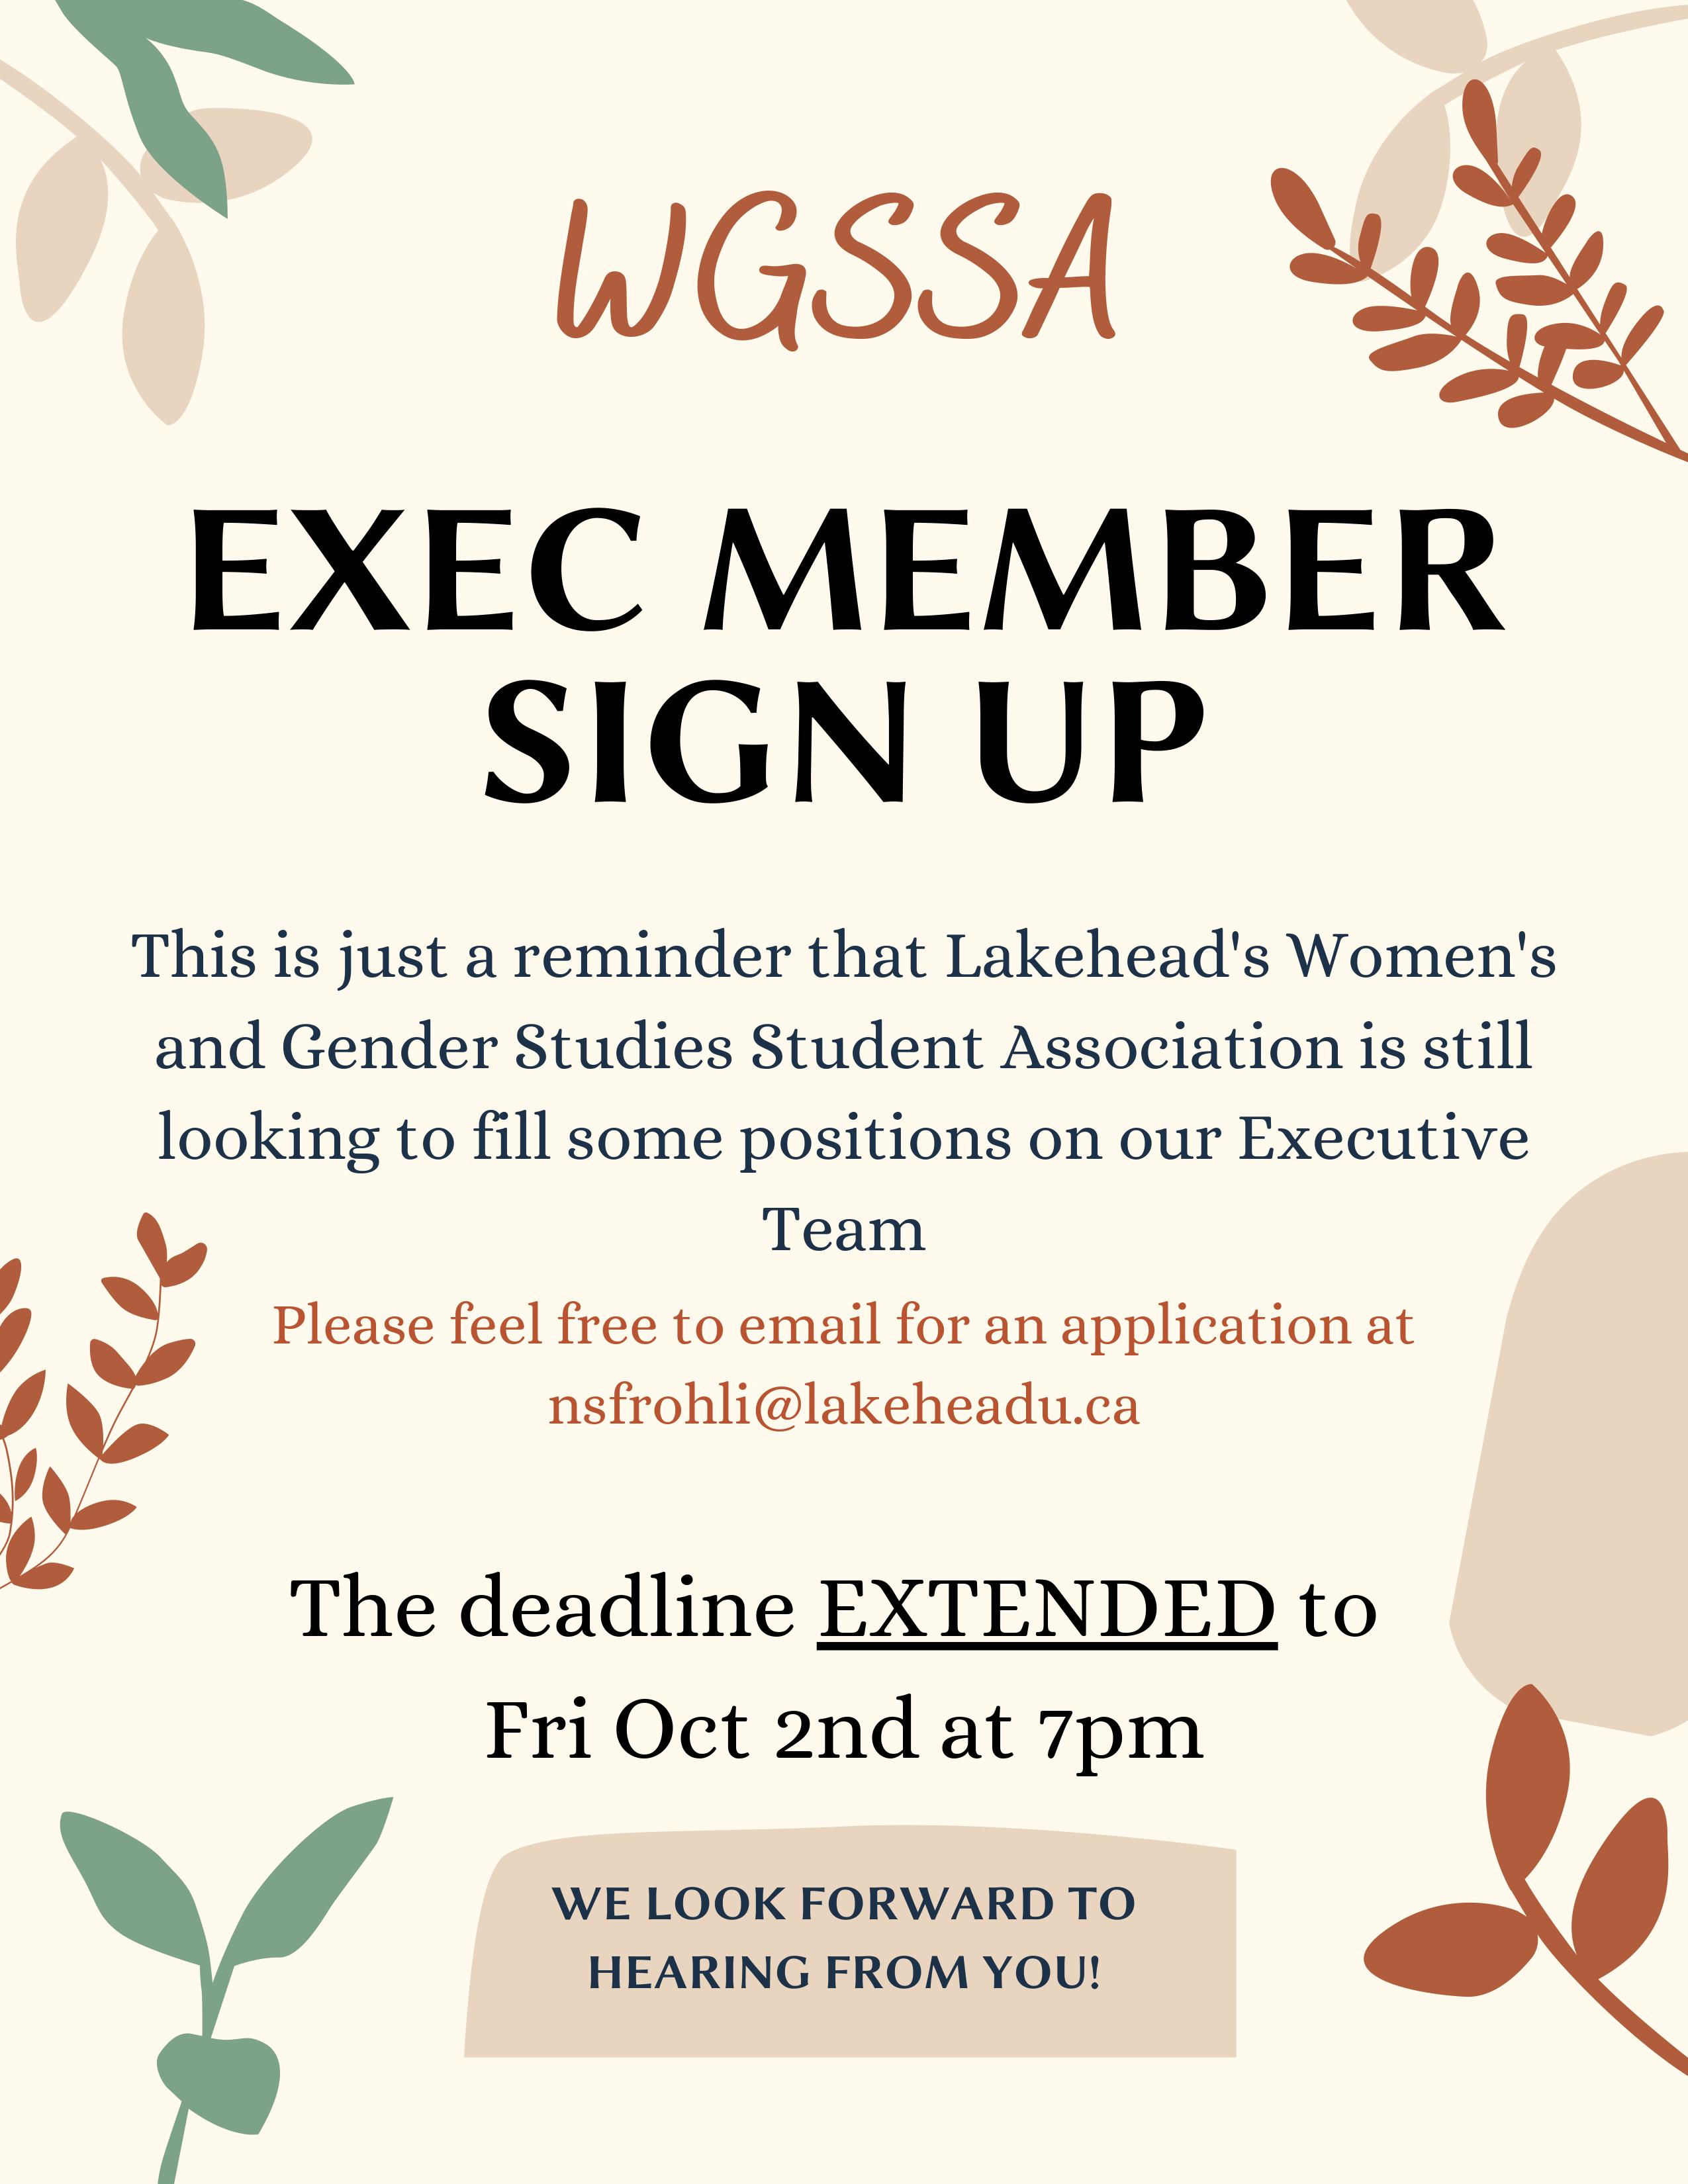 This is just a reminder that Lakehead's Women's and Gender Studies Student Association is still looking to fill some positions on our Executive Team. Please feel free to email for an application at nsfrohli@lakeheadu.ca. The deadline EXTENDED to Fri Oct 2nd, 2020 at 7pm. WE LOOK FORWARD TO HEARING FROM YOU!